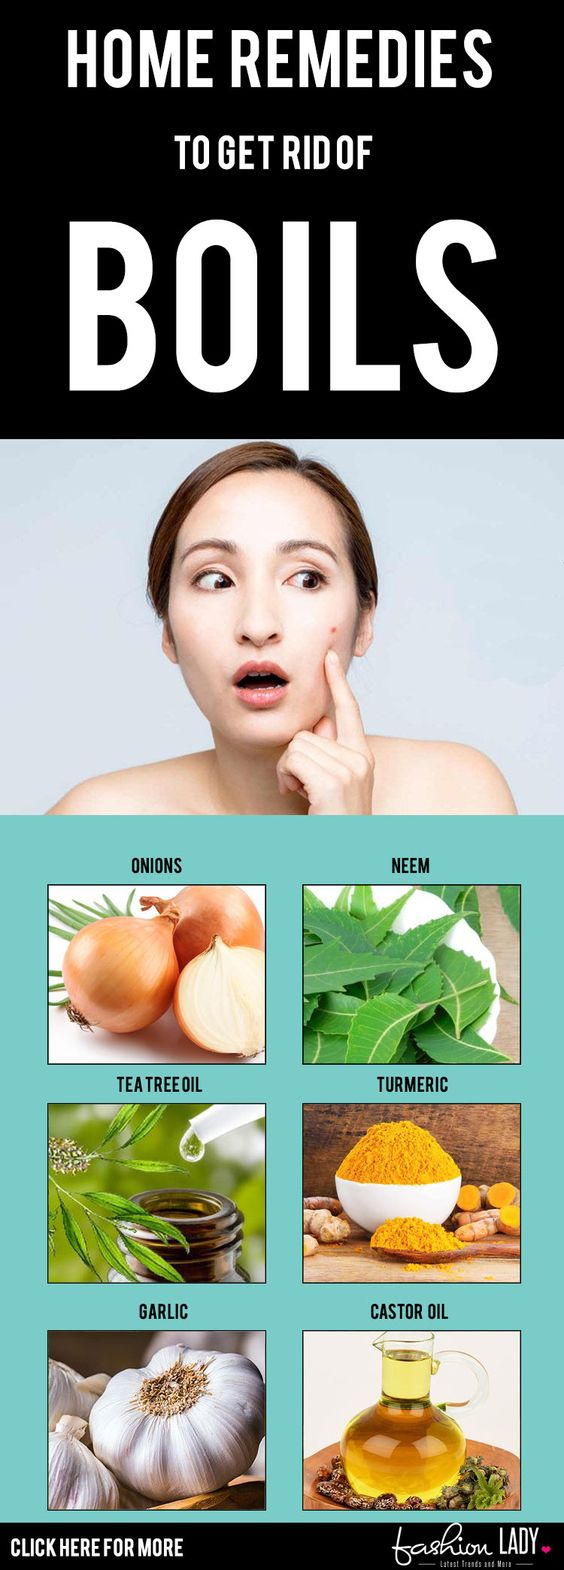 Home Remedies To Get Rid Of Boils